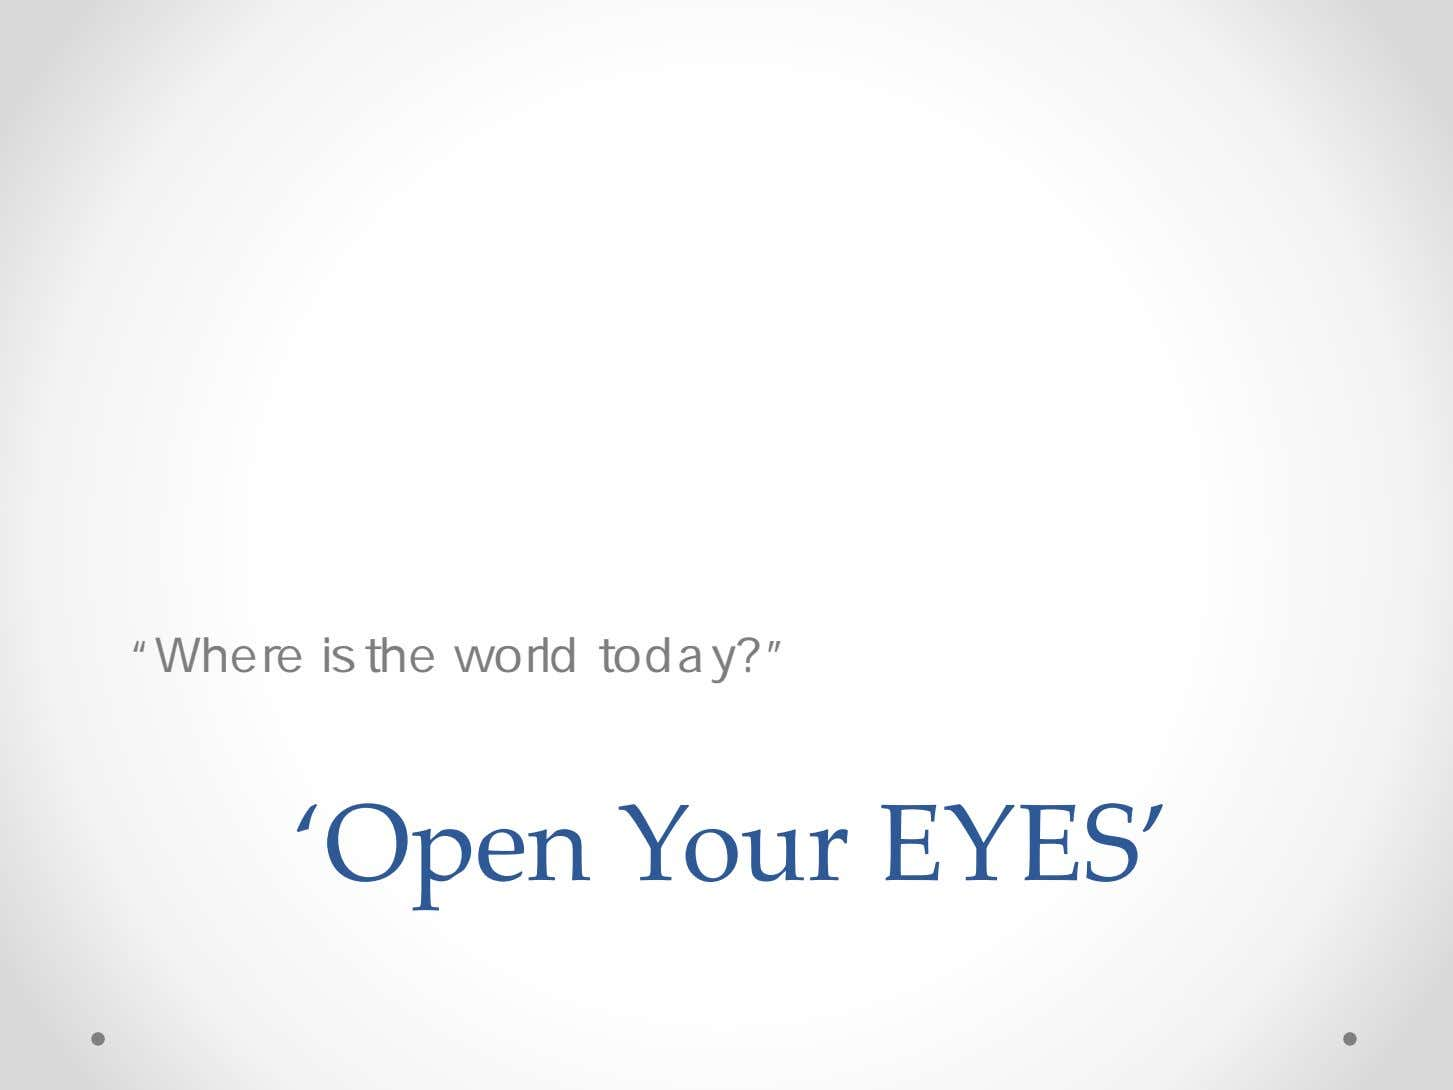 """Where is the world today?"" 'Open Your EYES'"